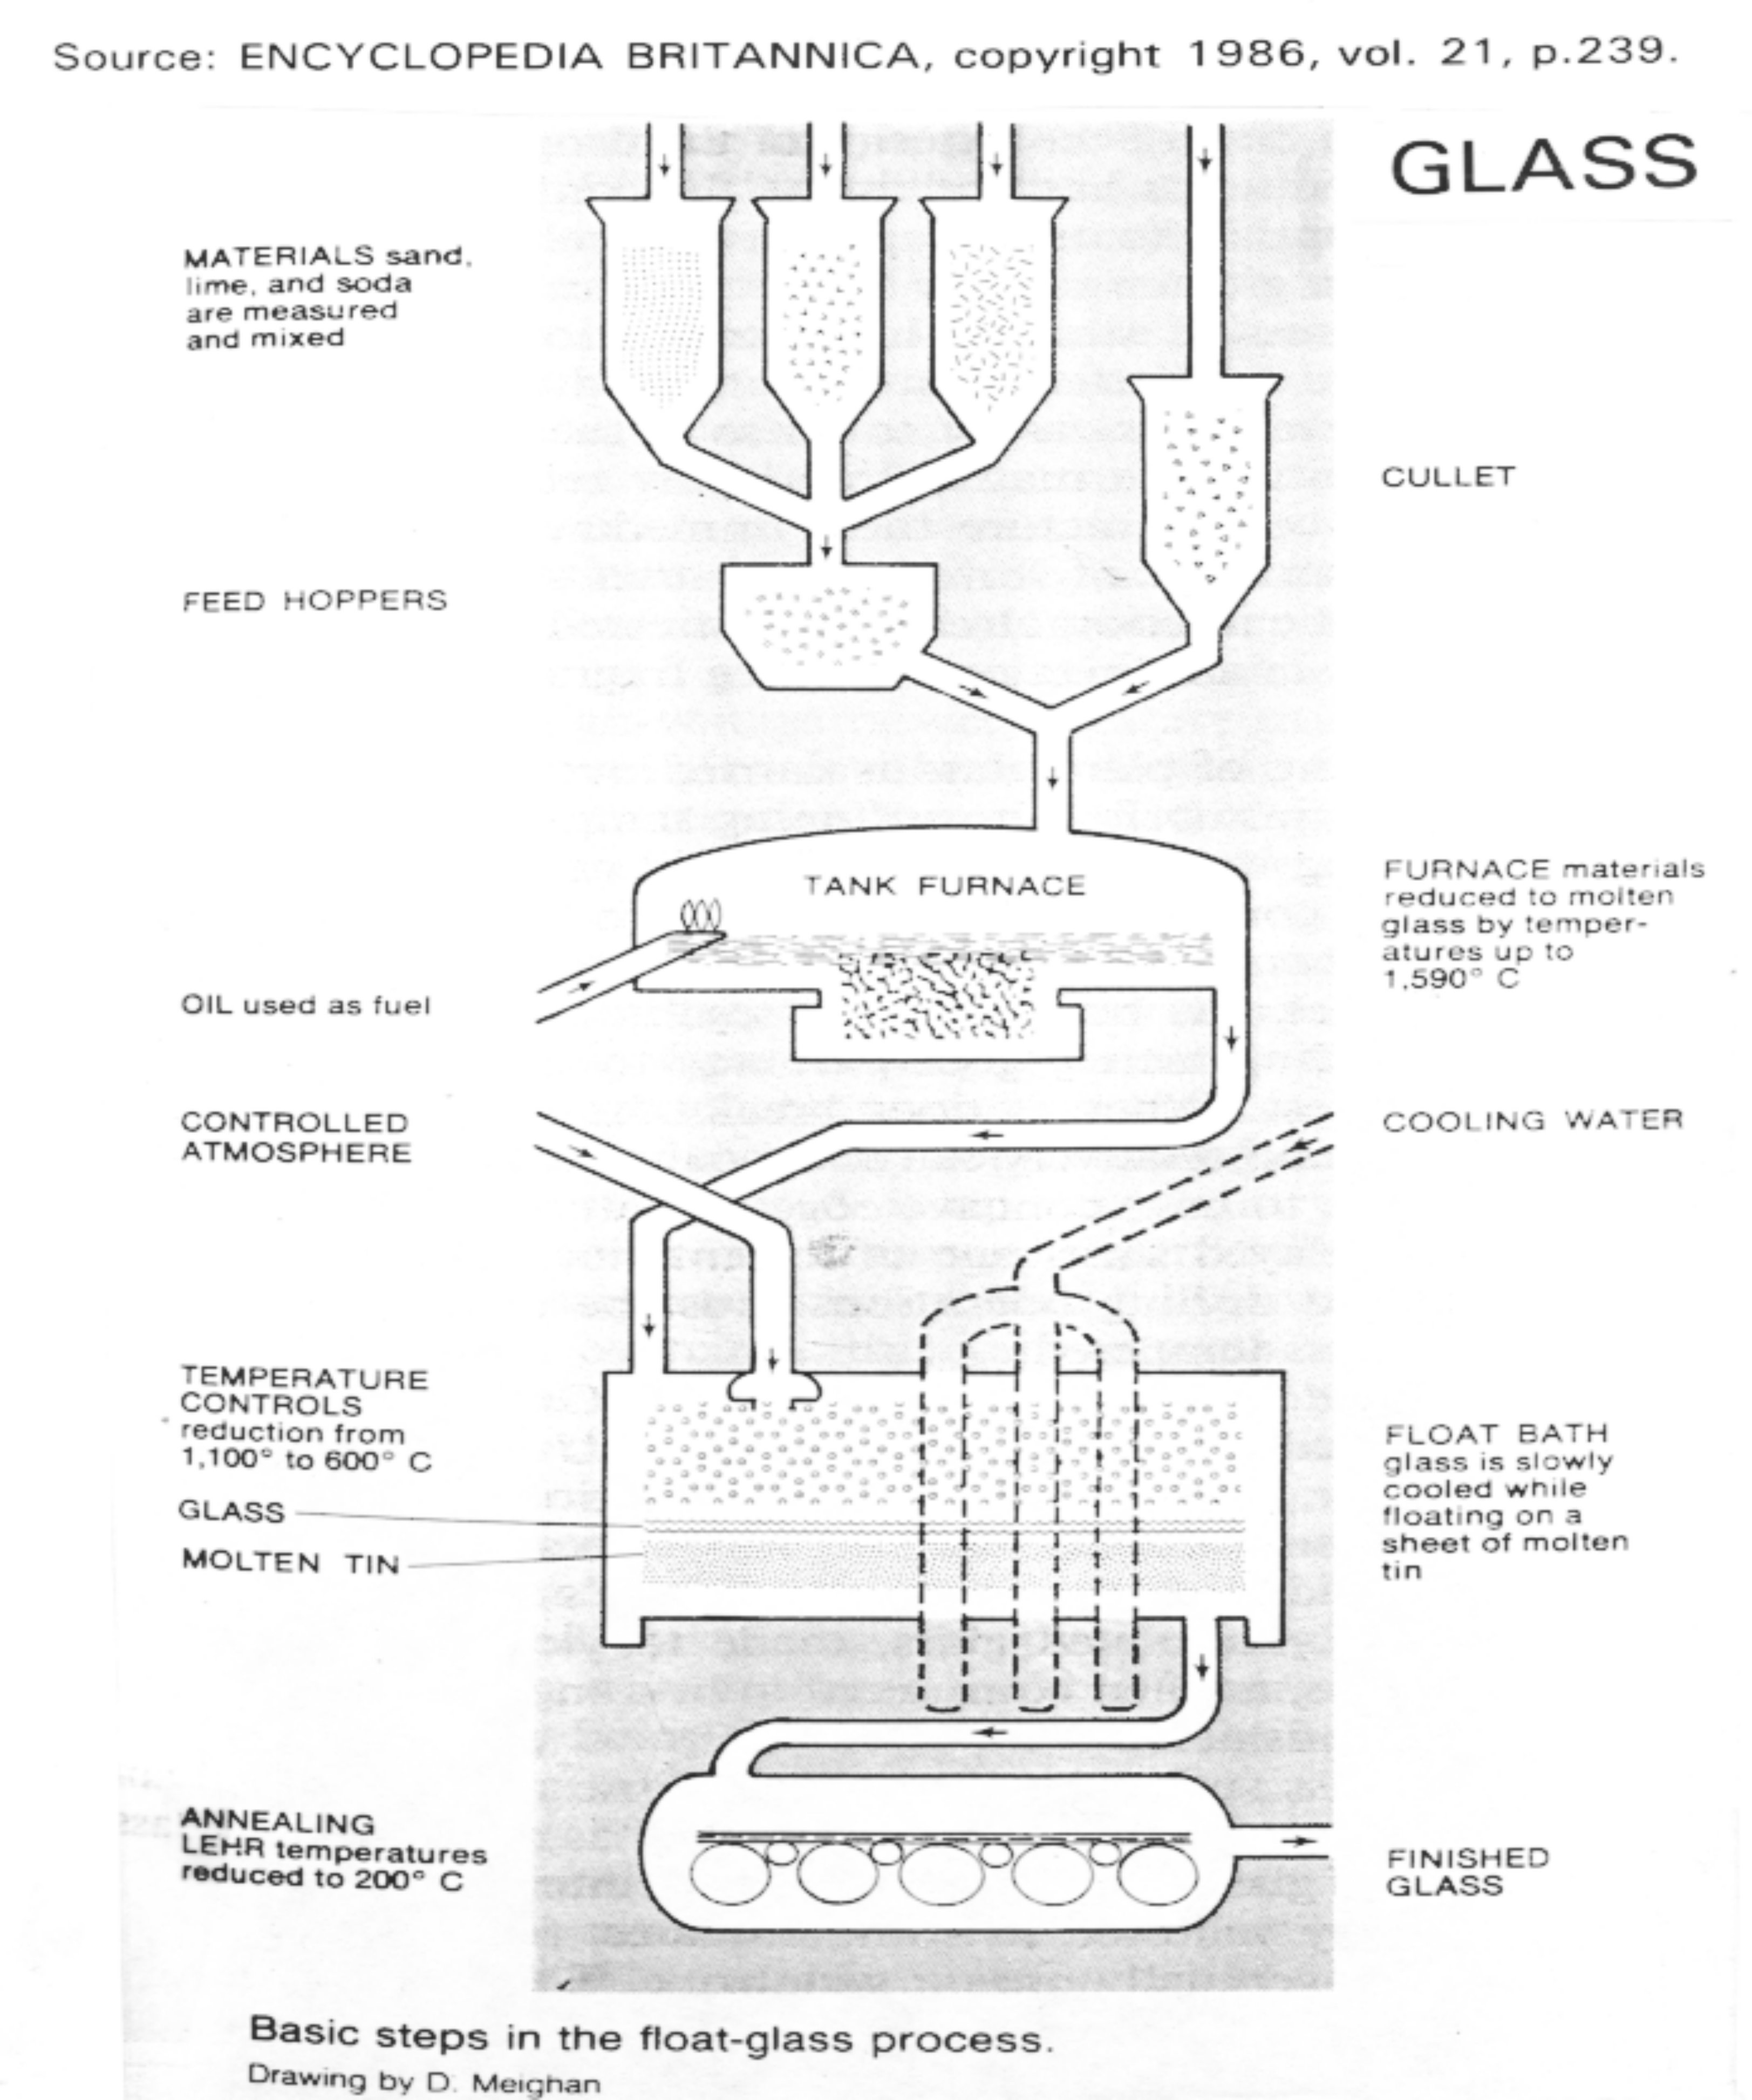 clean coal power plant diagram